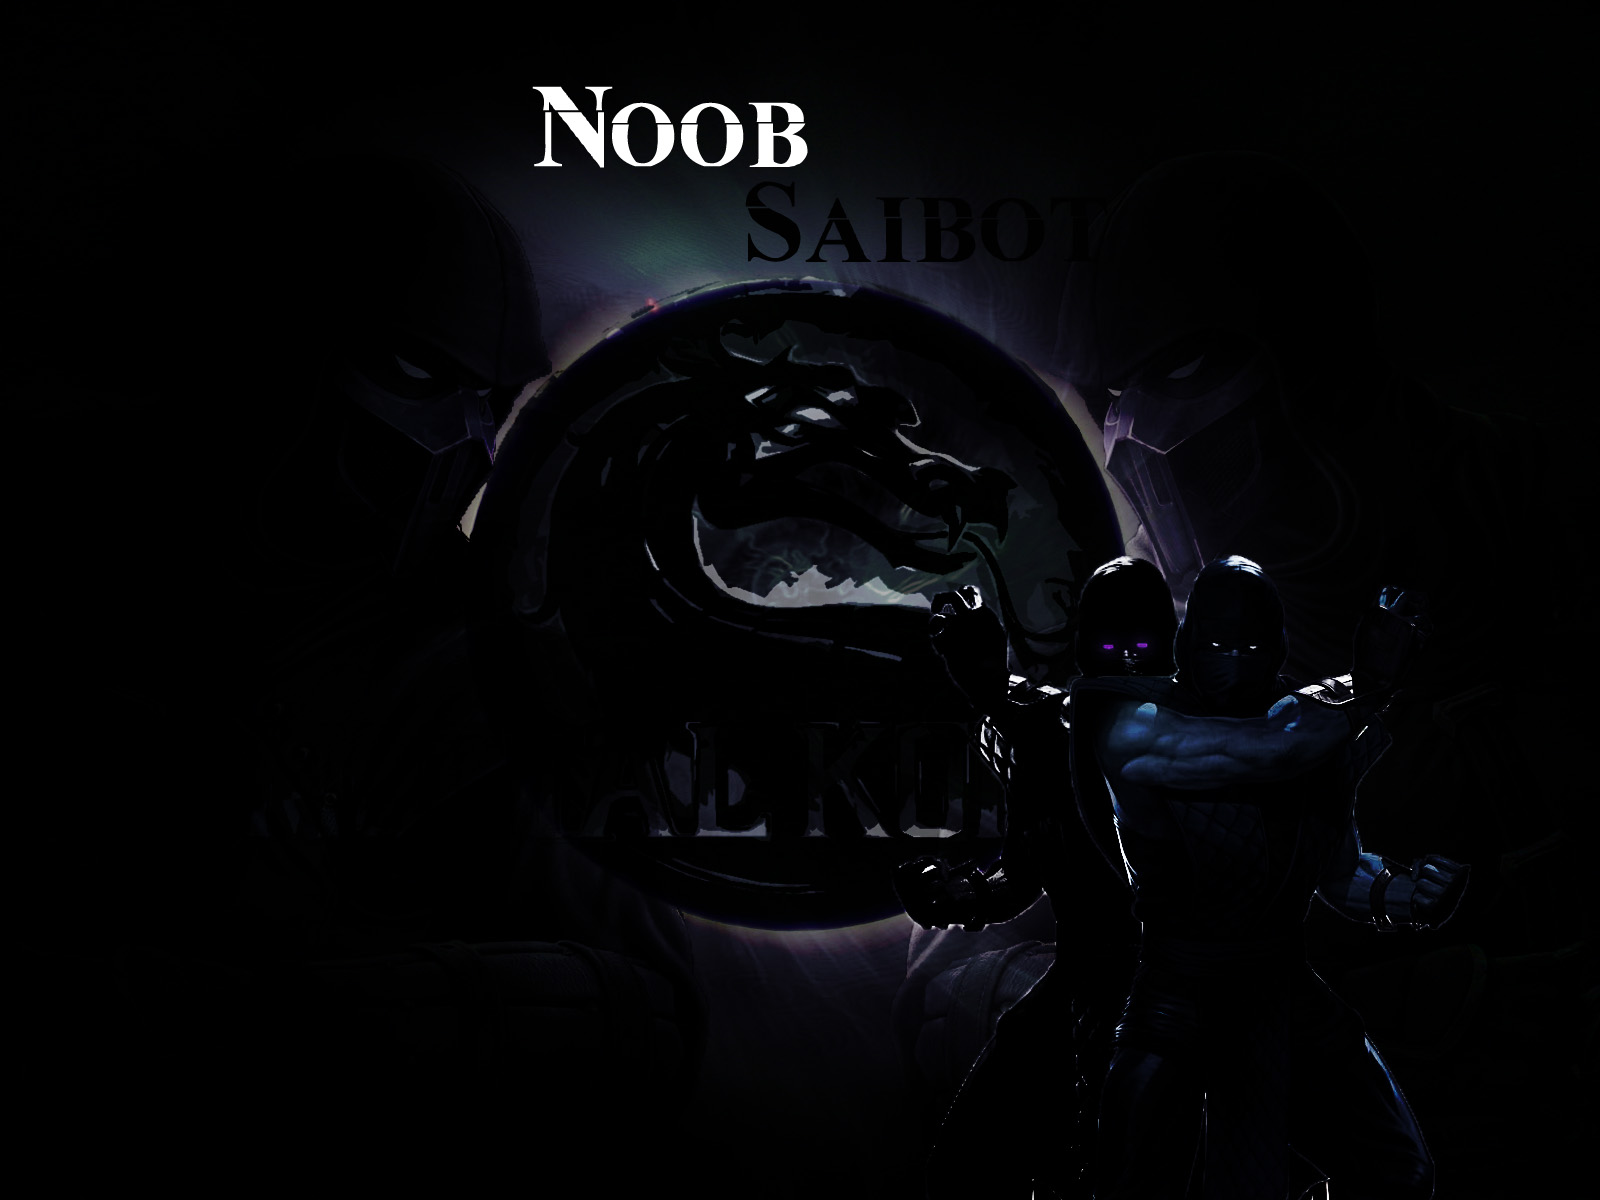 noob-saibot-MK-Noob-Saibot-by-Reaper-The-Creeper-on-deviantART-wallpaper-wp428000-1